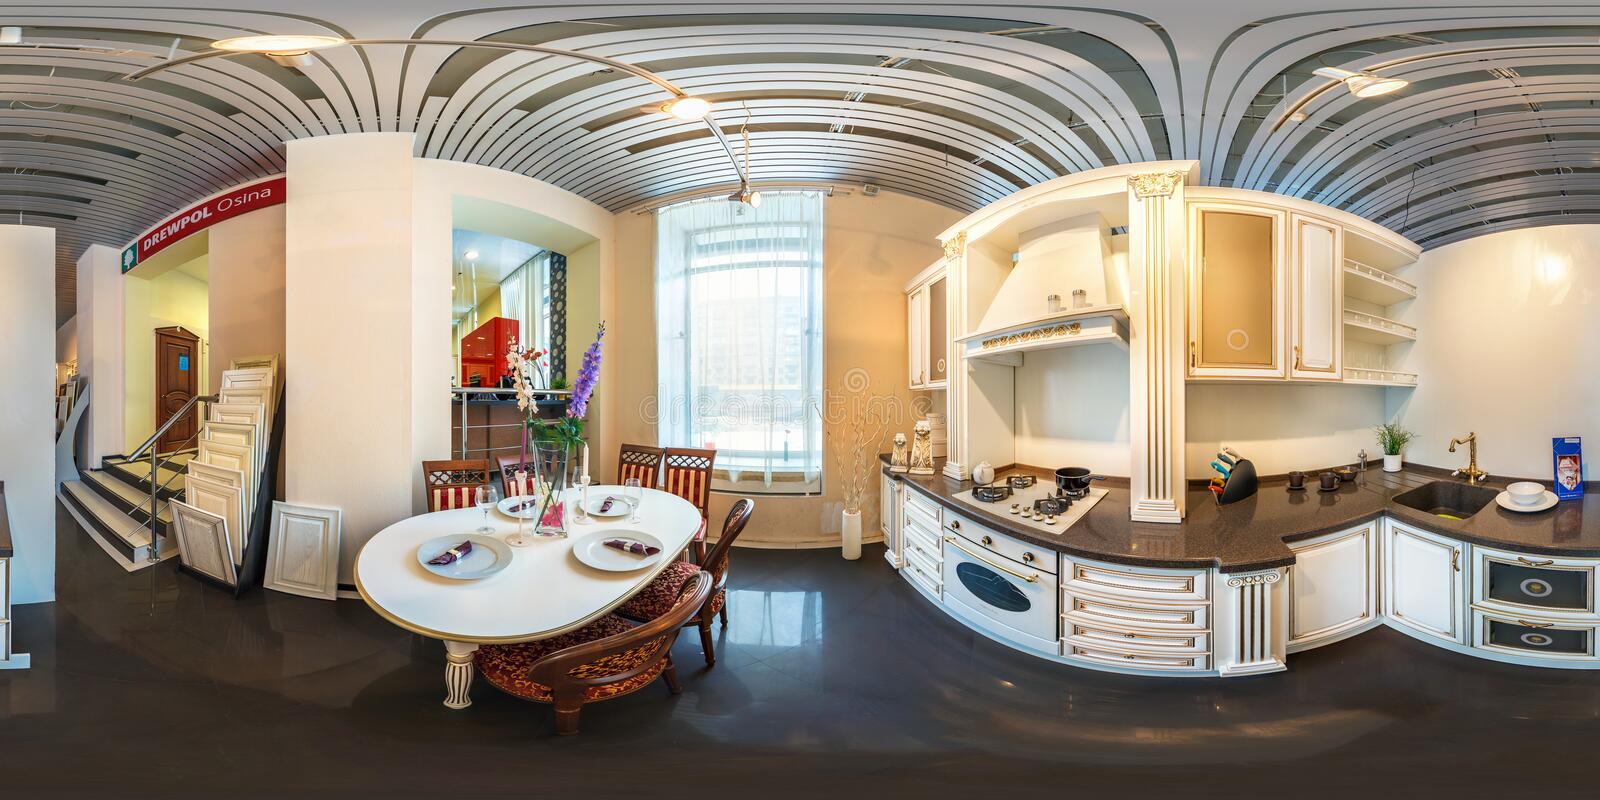 MOSCOW, RUSSIA - FEBRUARY 19, 2013: Full spherical 360 degrees seamless panorama in equirectangular equidistant projection,. Panorama in interior modern kitchen stock photo